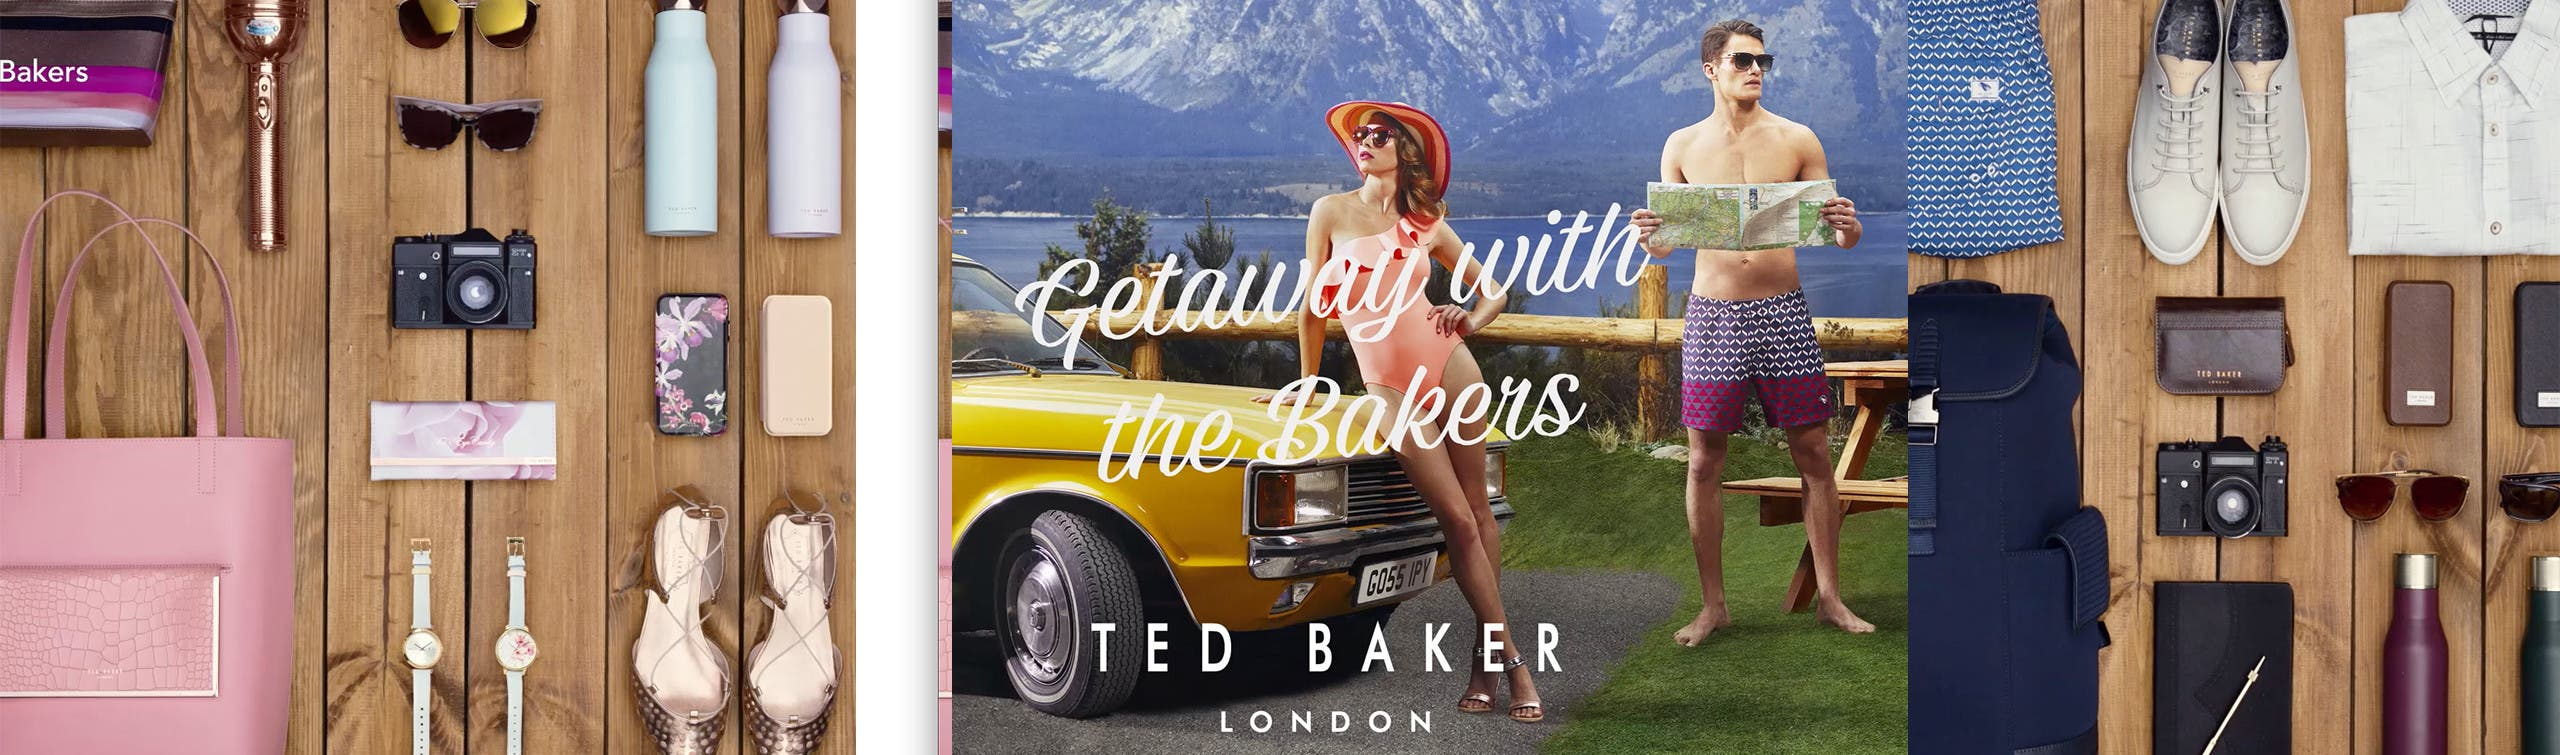 Getaway with the Bakers: video from Ted Baker London.